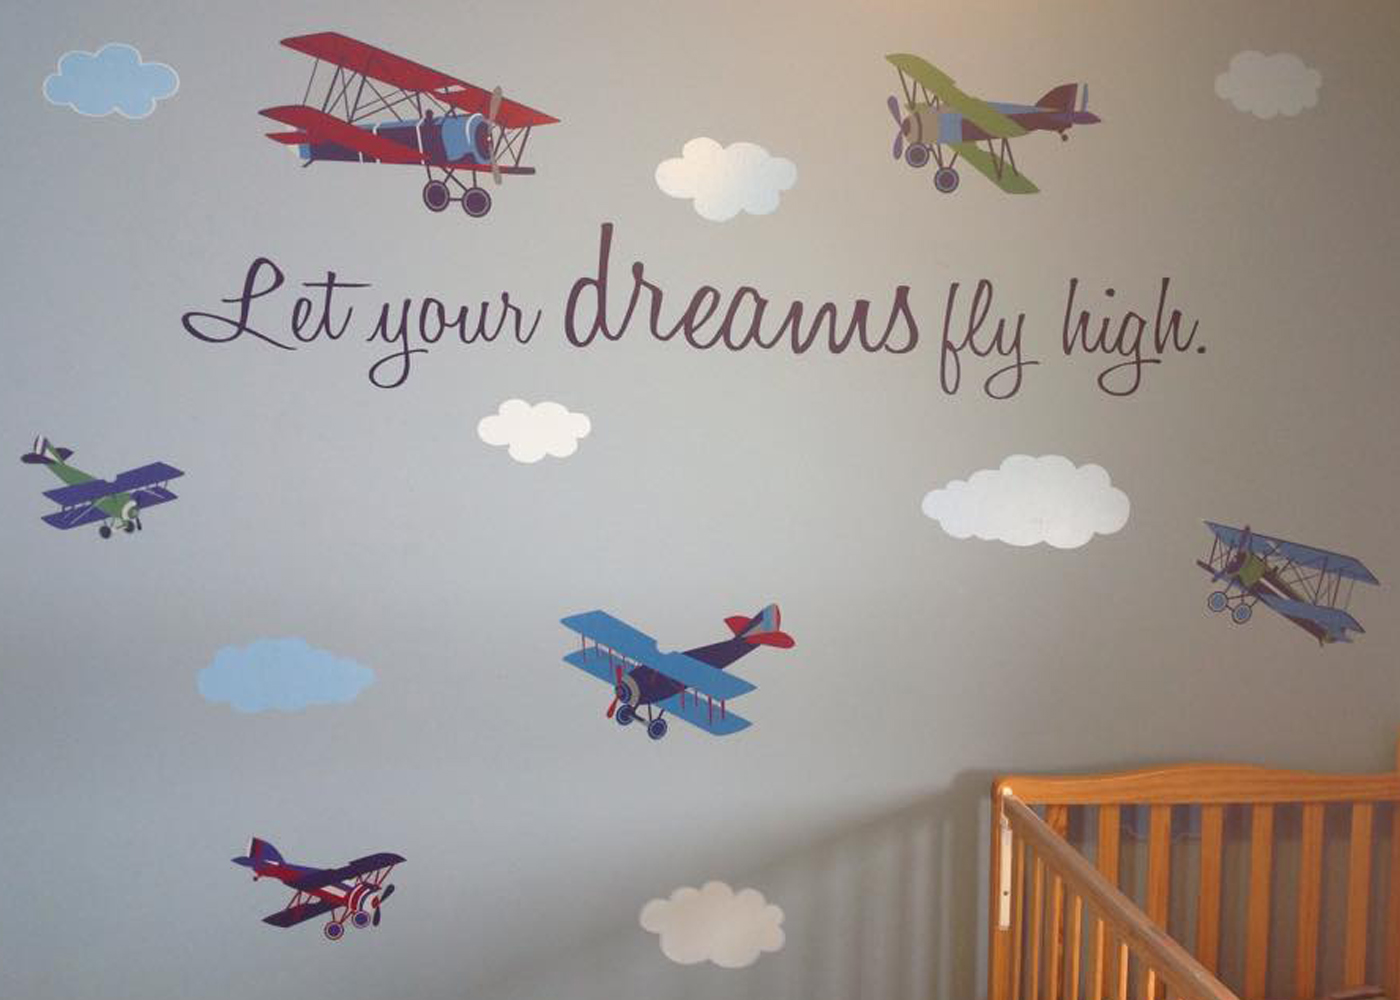 let-your-dreams-fly-high-wall-decal-airplane-quote-for-kids-room.jpeg